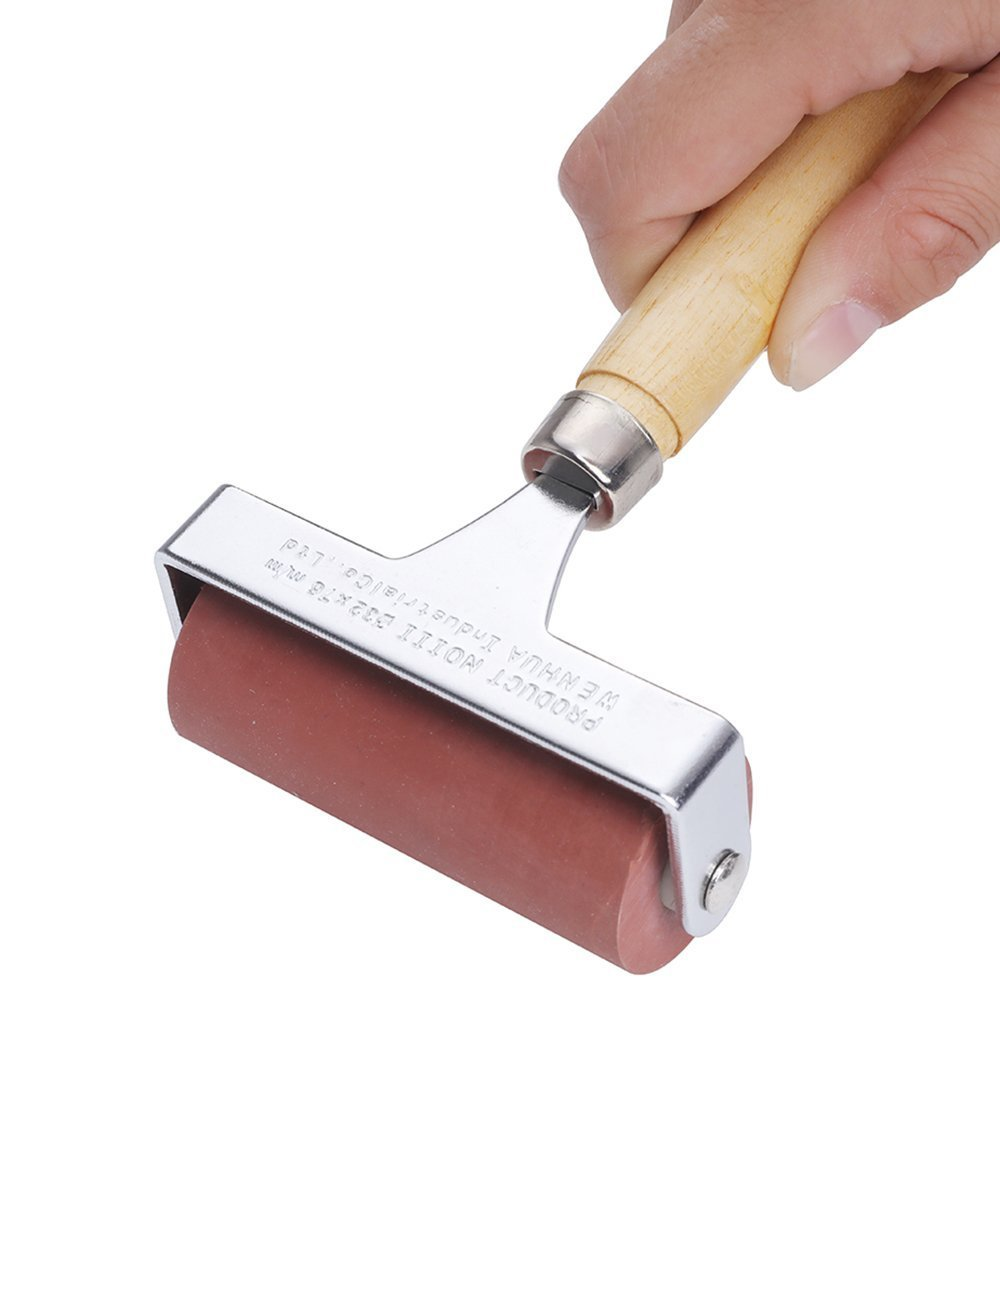 MEEDEN Hard Rubber Brayer Roller 4-inch for Printmaking Craft Projects